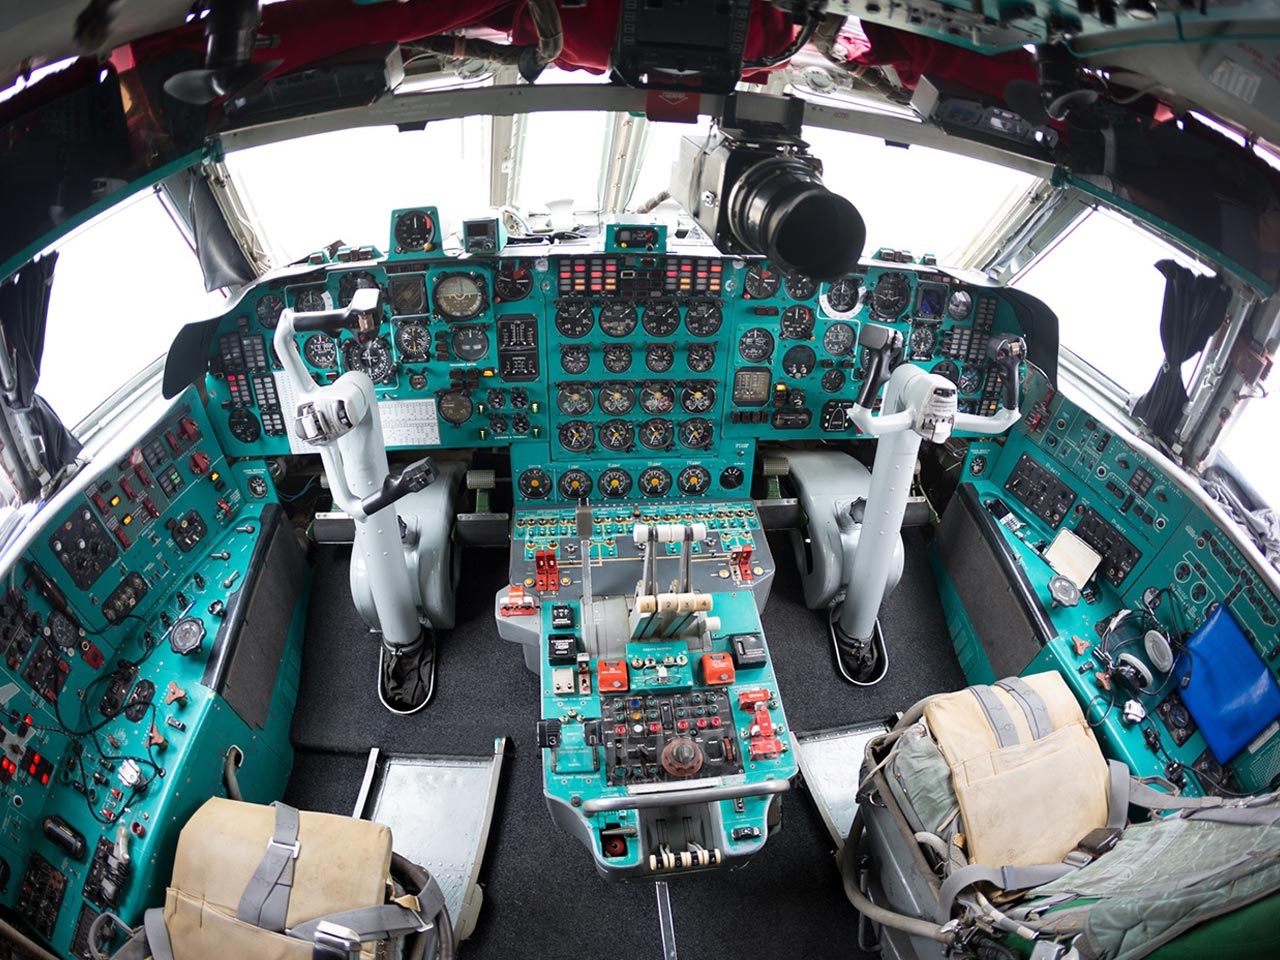 Ilyushin IL-76 (Cockpit) - Available for Private Charter from Execflyer